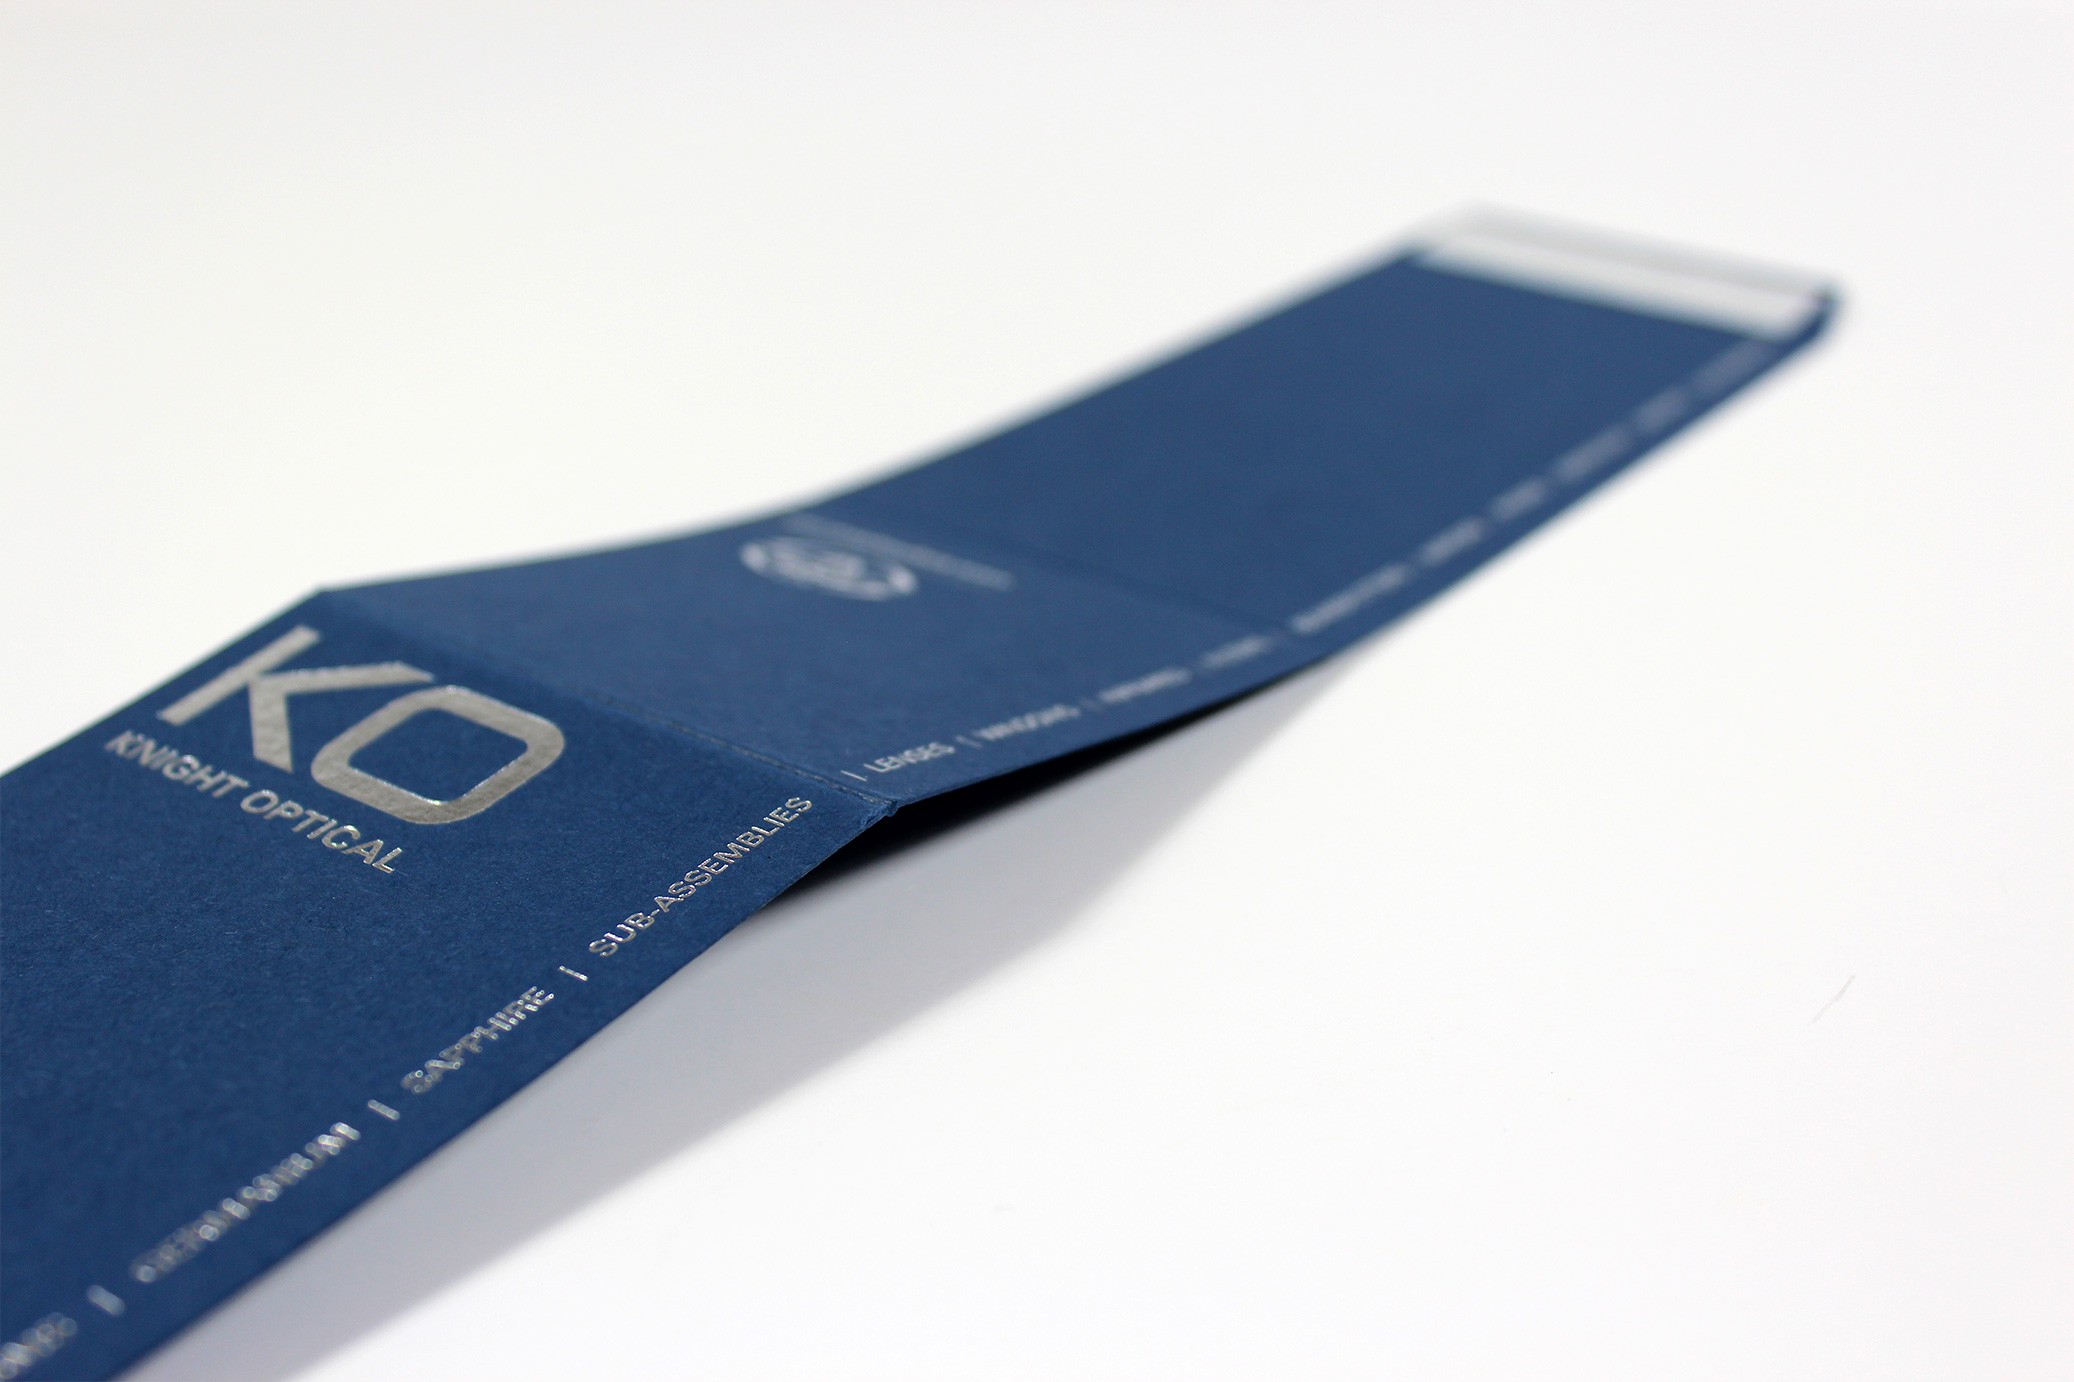 Silver foiled sleeve using blue card and taped on flap for Knight Optical - opened out flat